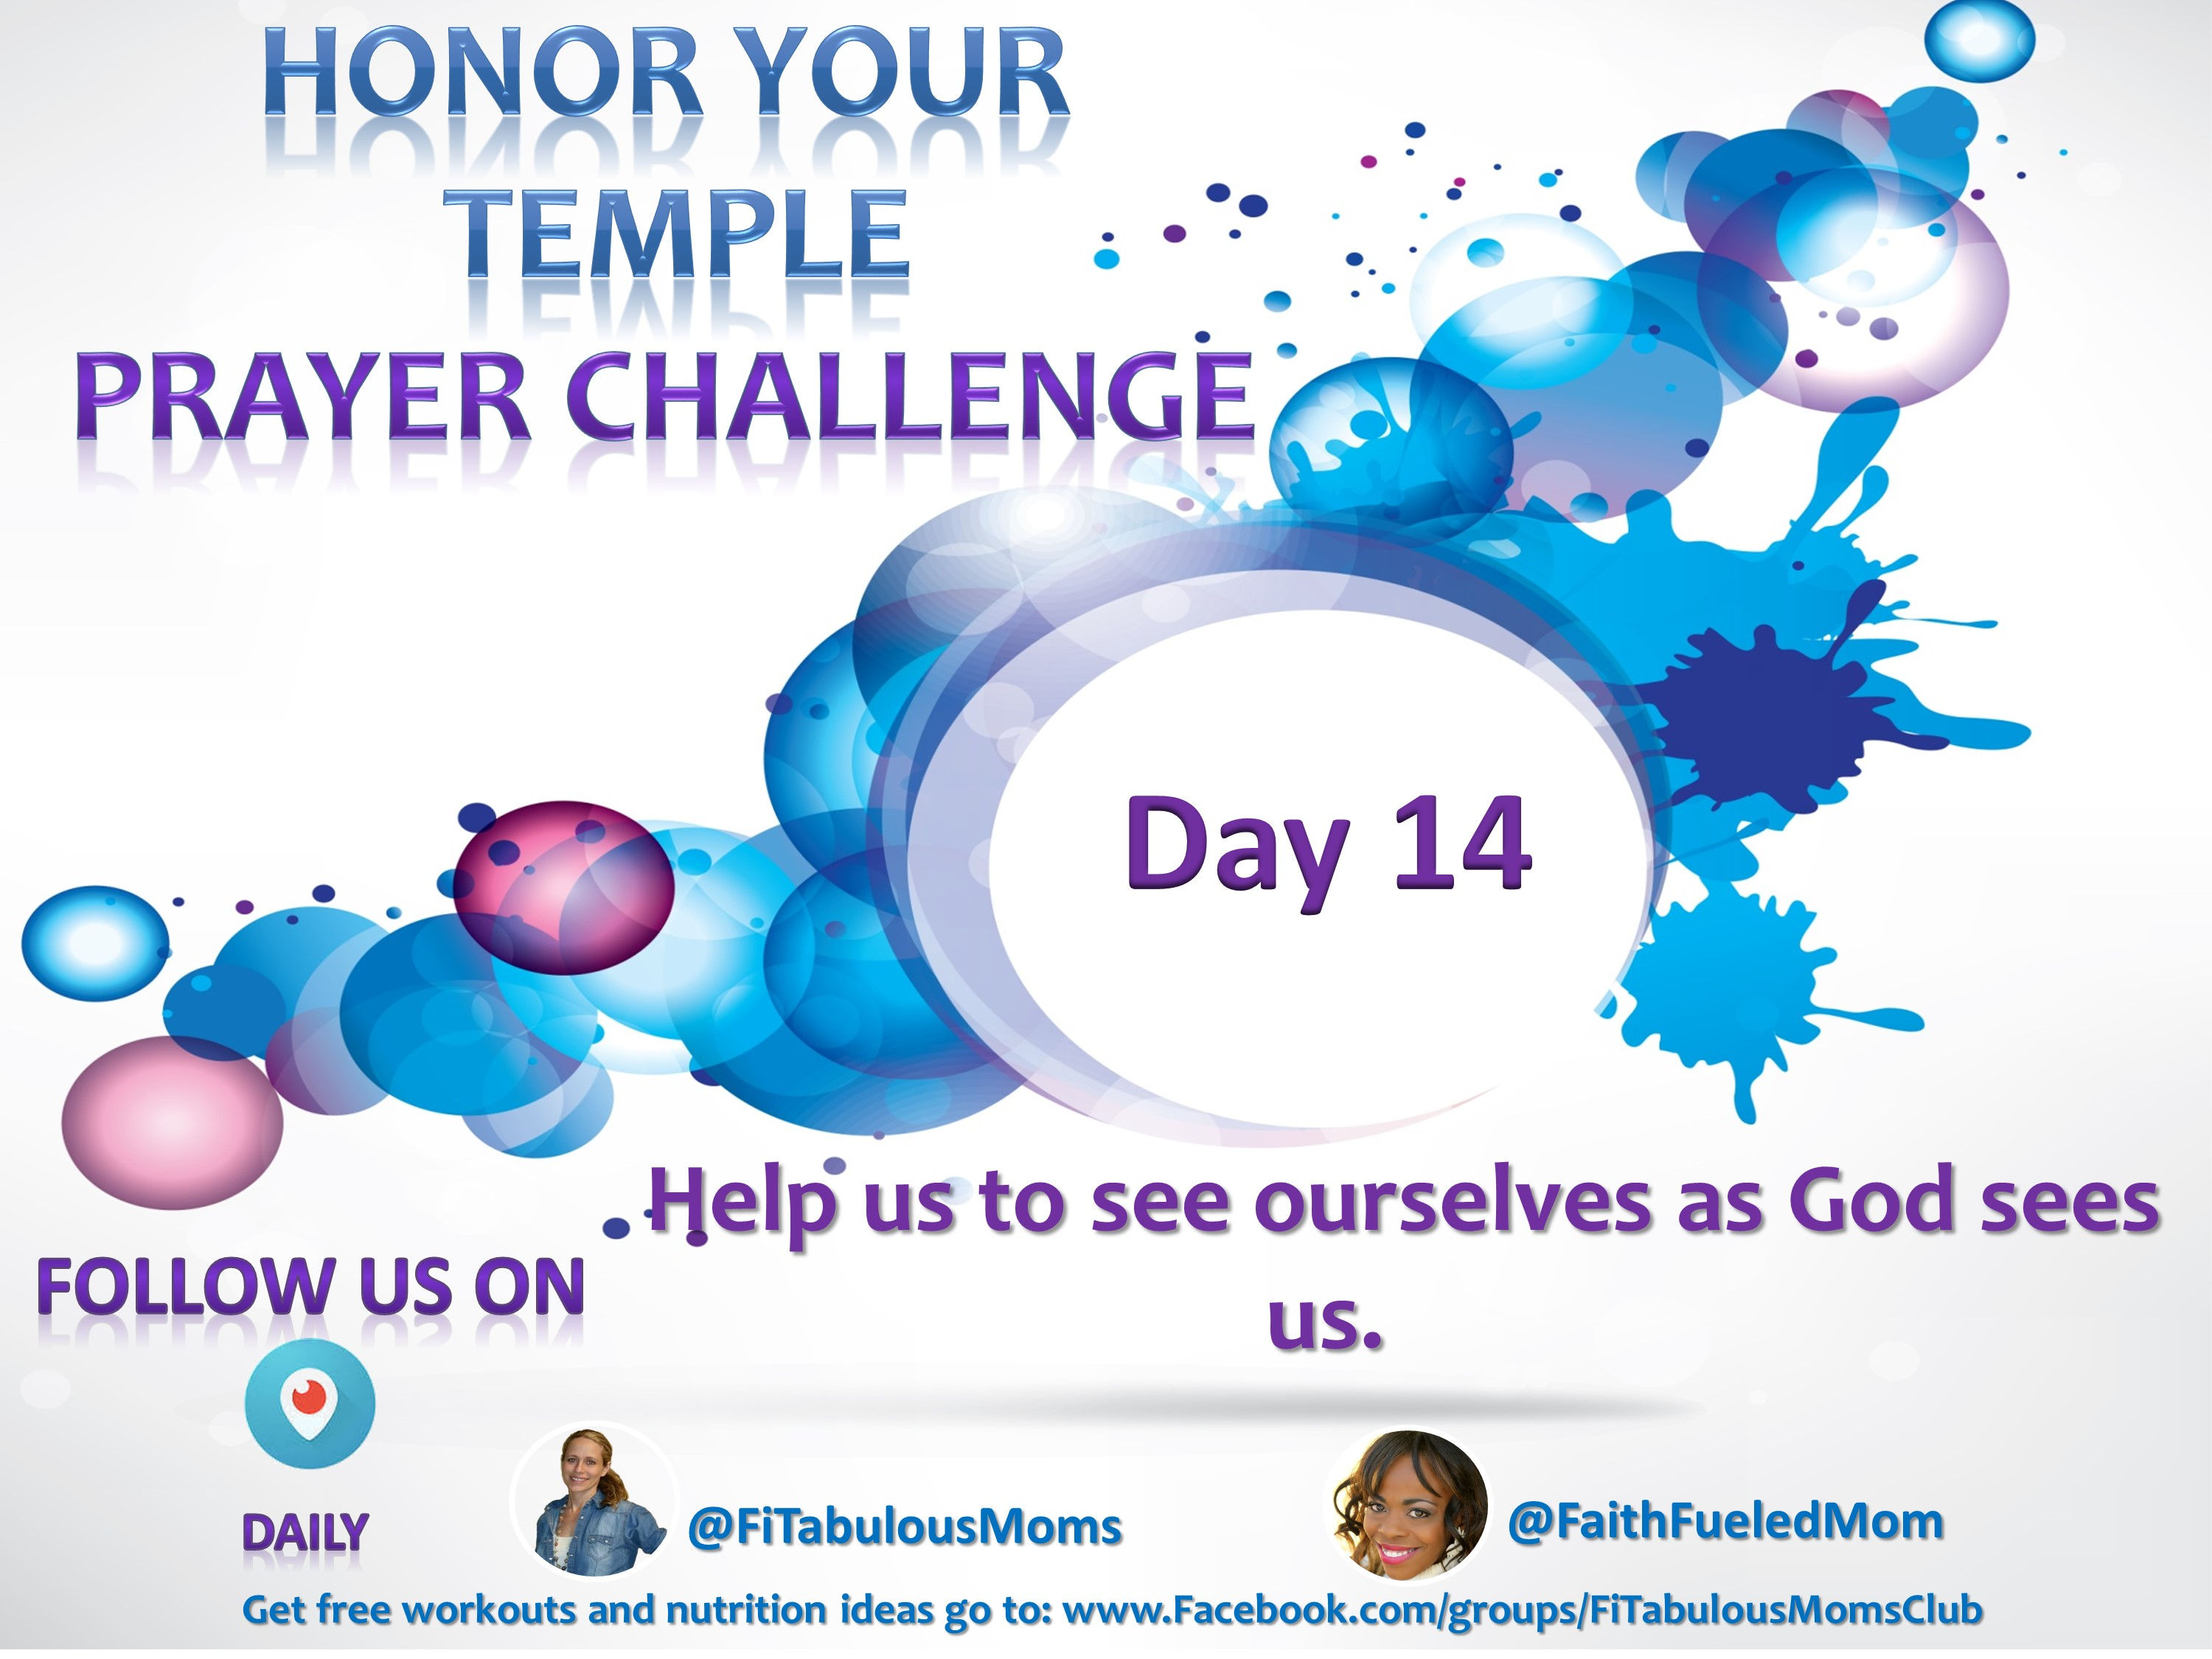 Day 14 Honor Your Temple Prayer Challenge